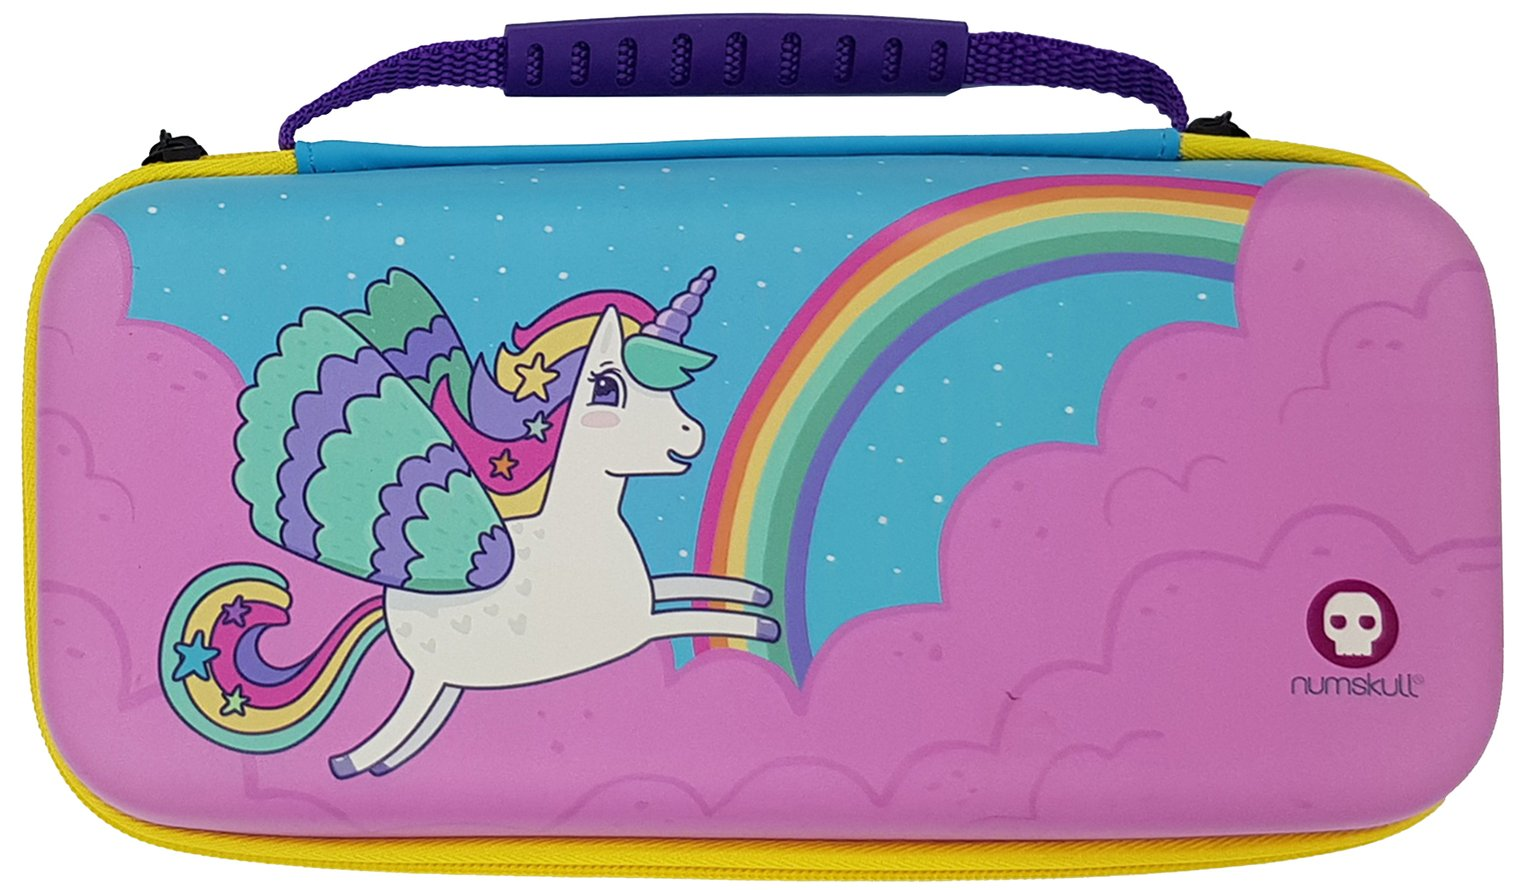 Nintendo Switch Hard Shell Carry Case - Unicorn